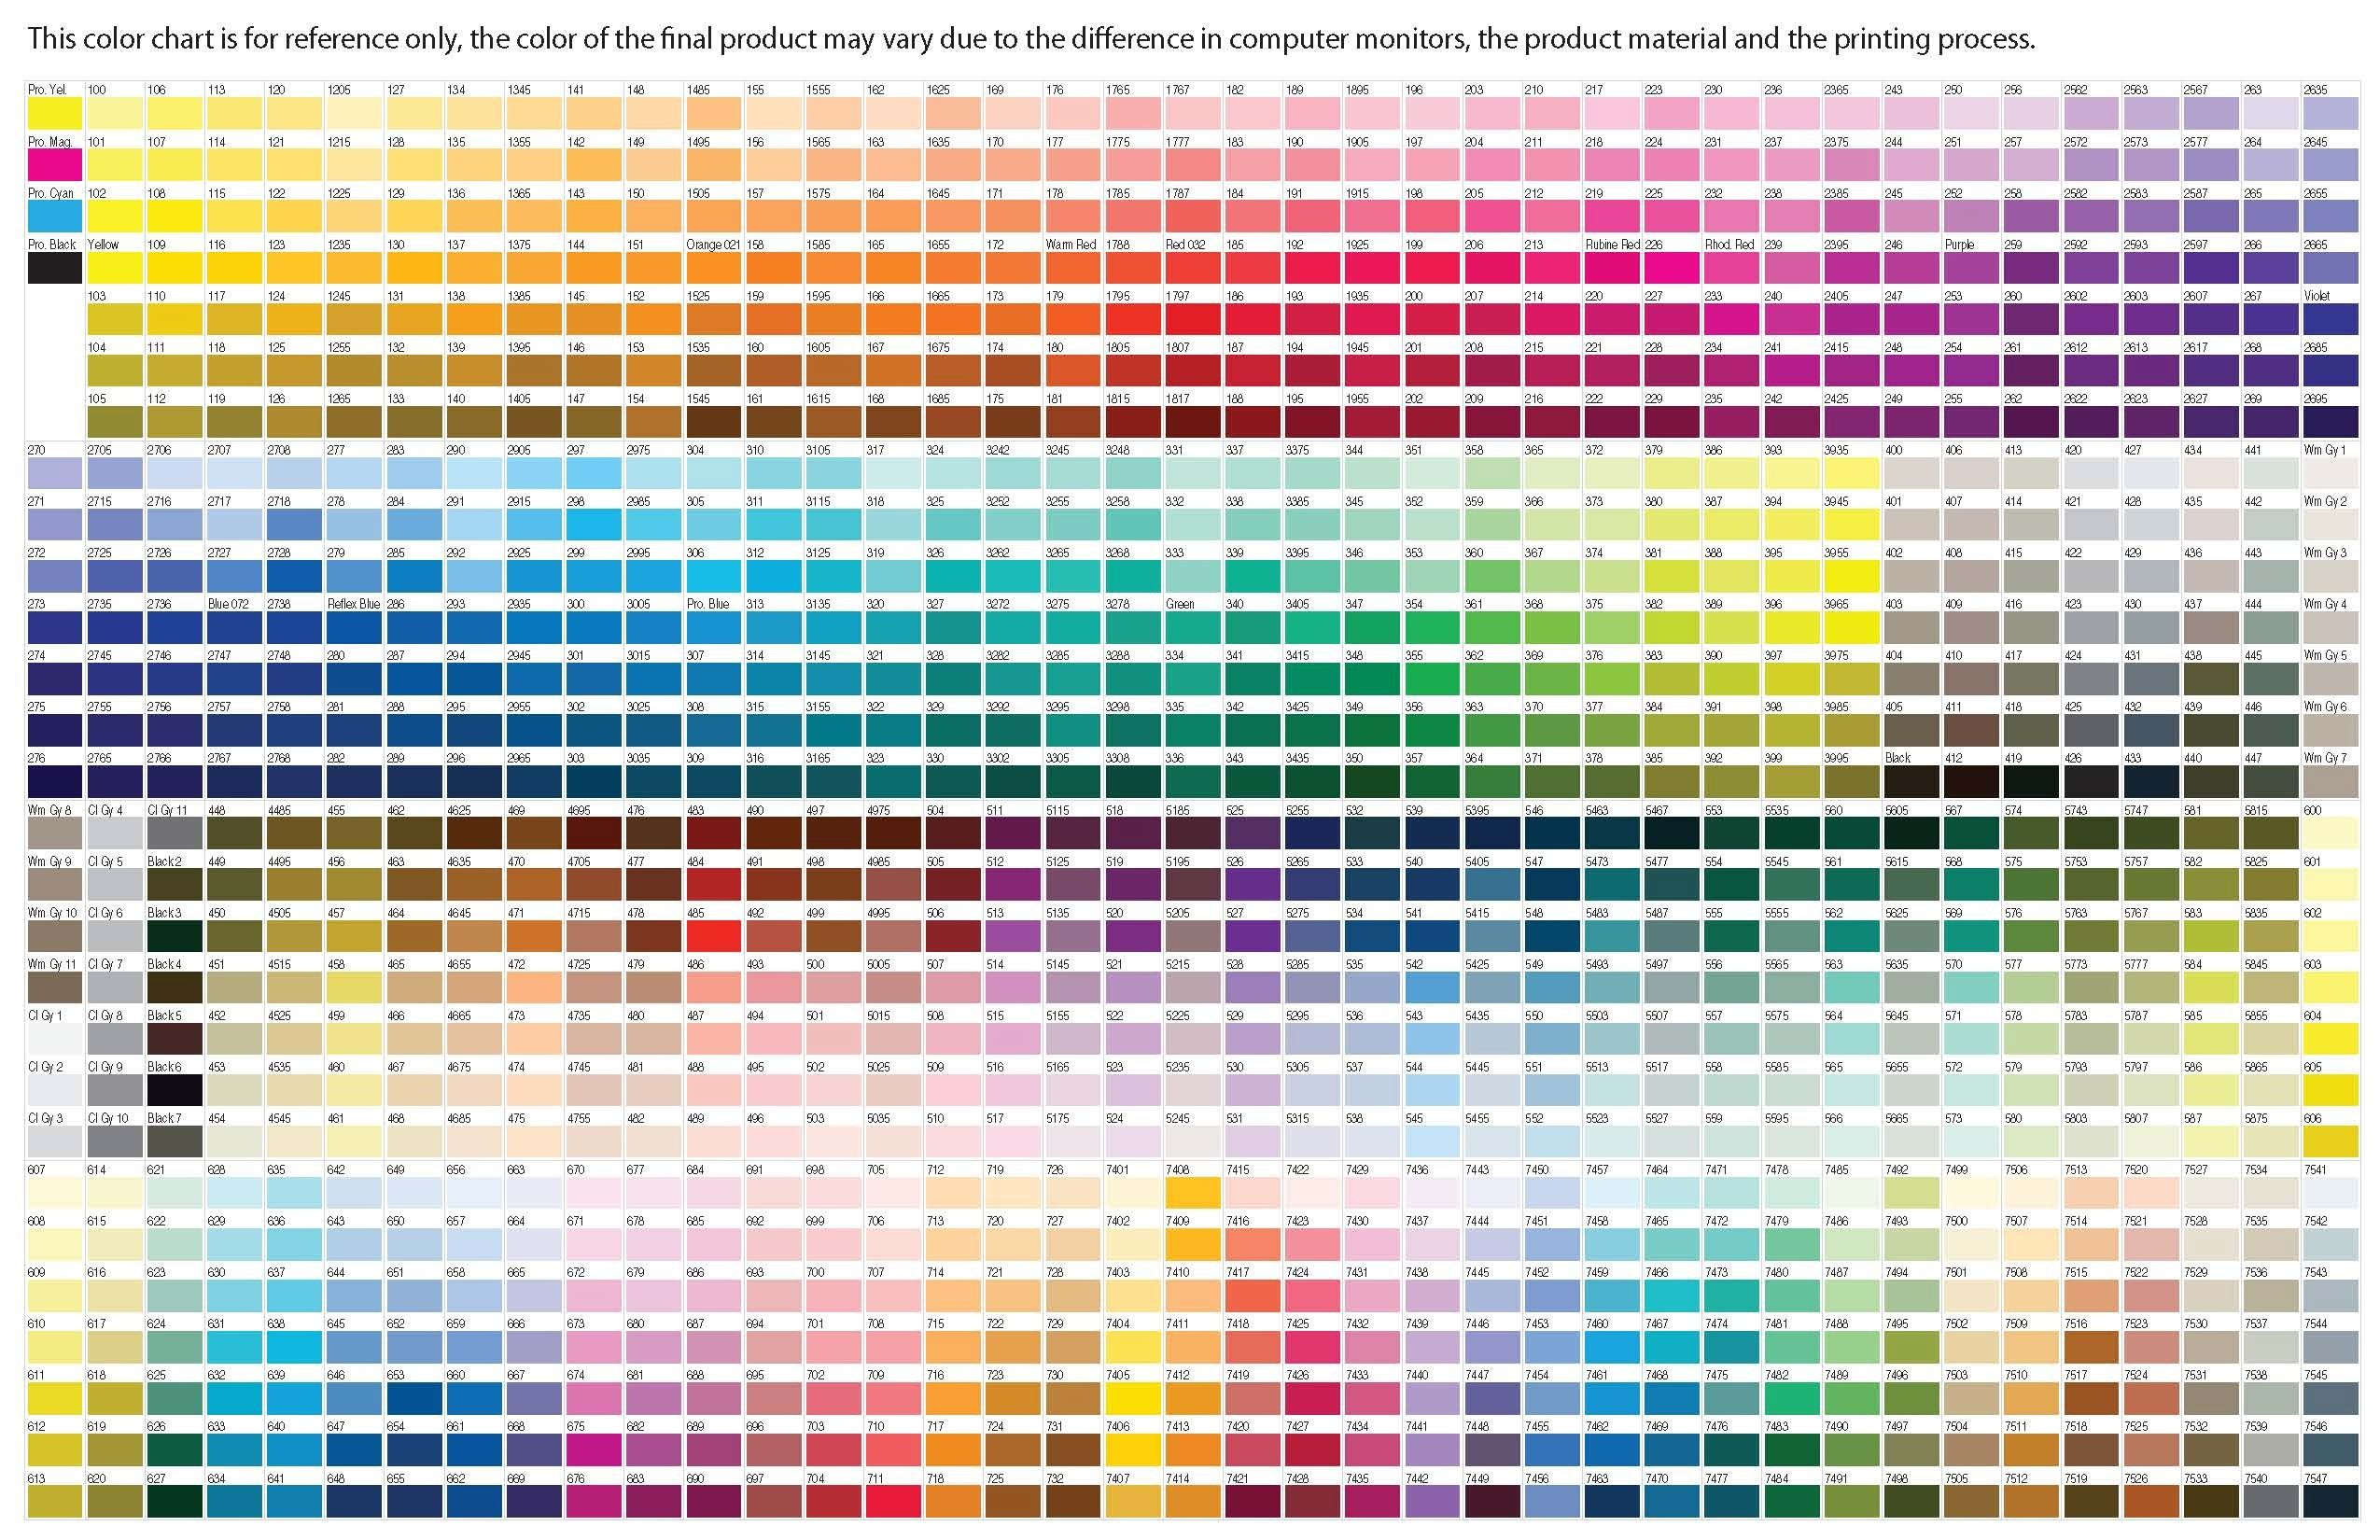 17 Best images about Pantones on Pinterest | Pantone color ...